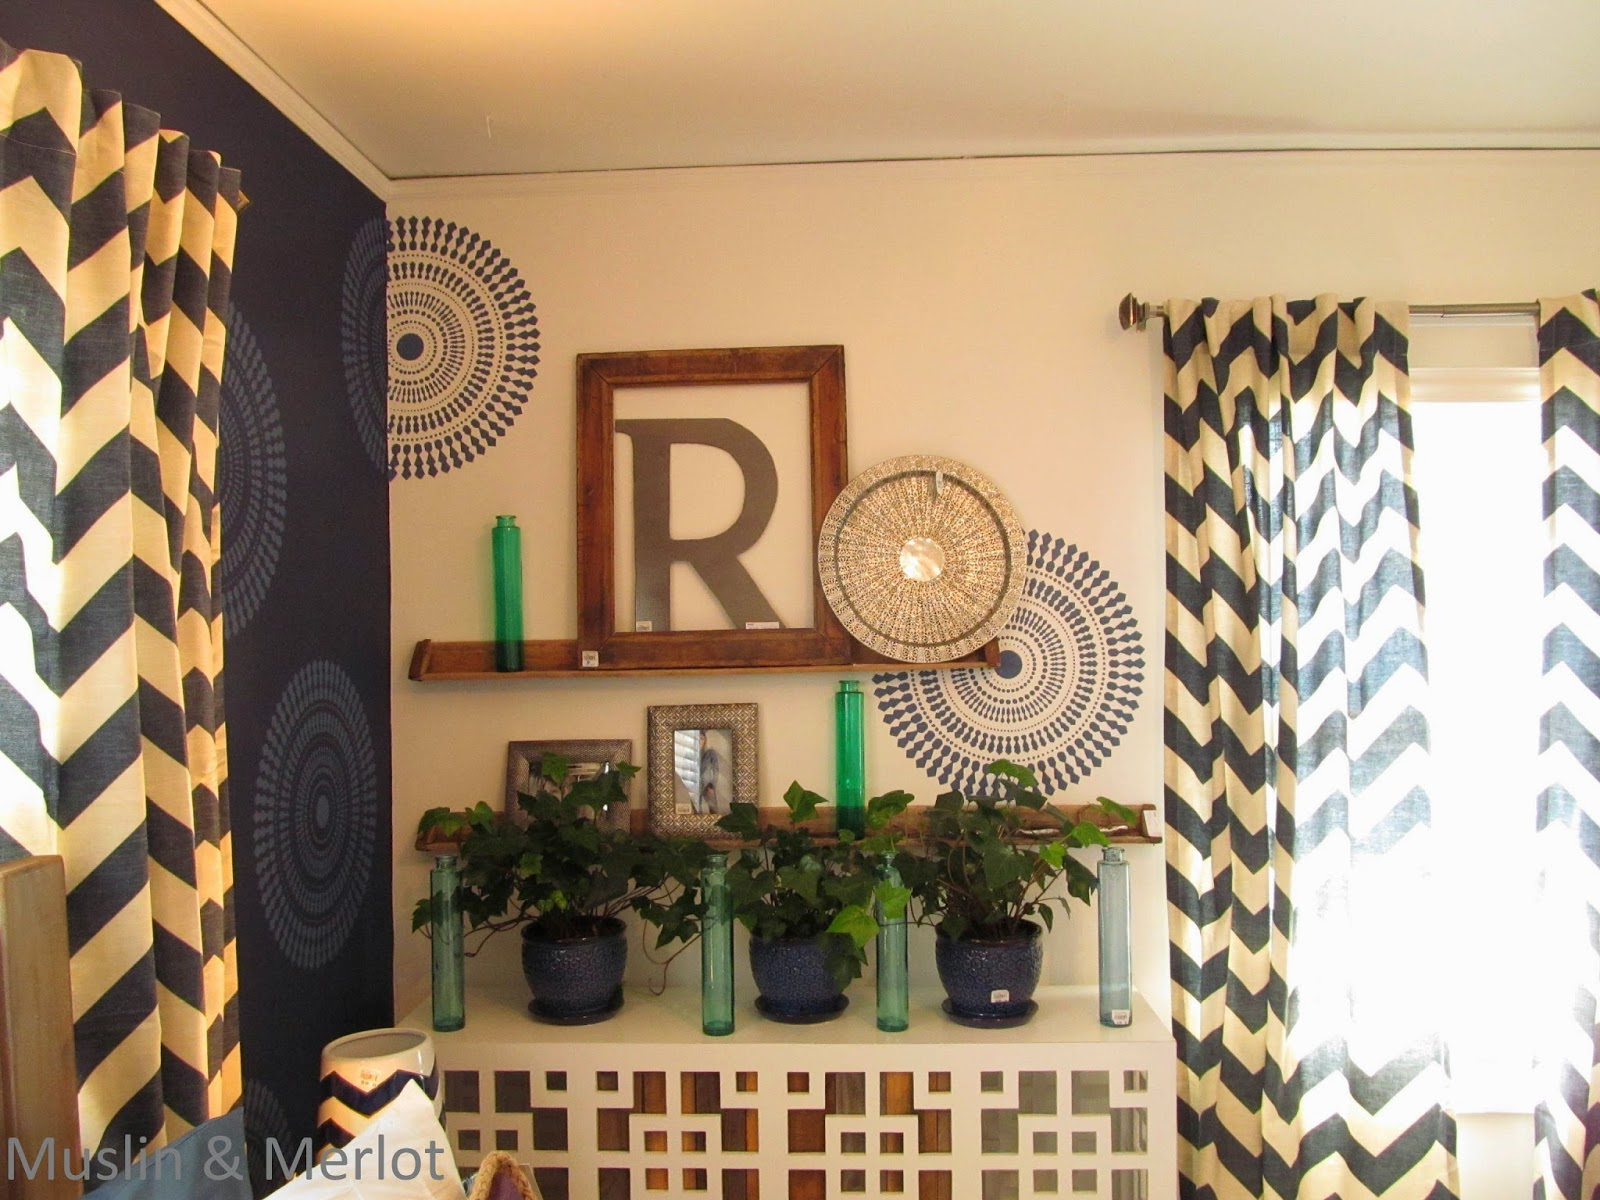 Stenciled walls, chevron curtains, shelves made of chicken feeders!